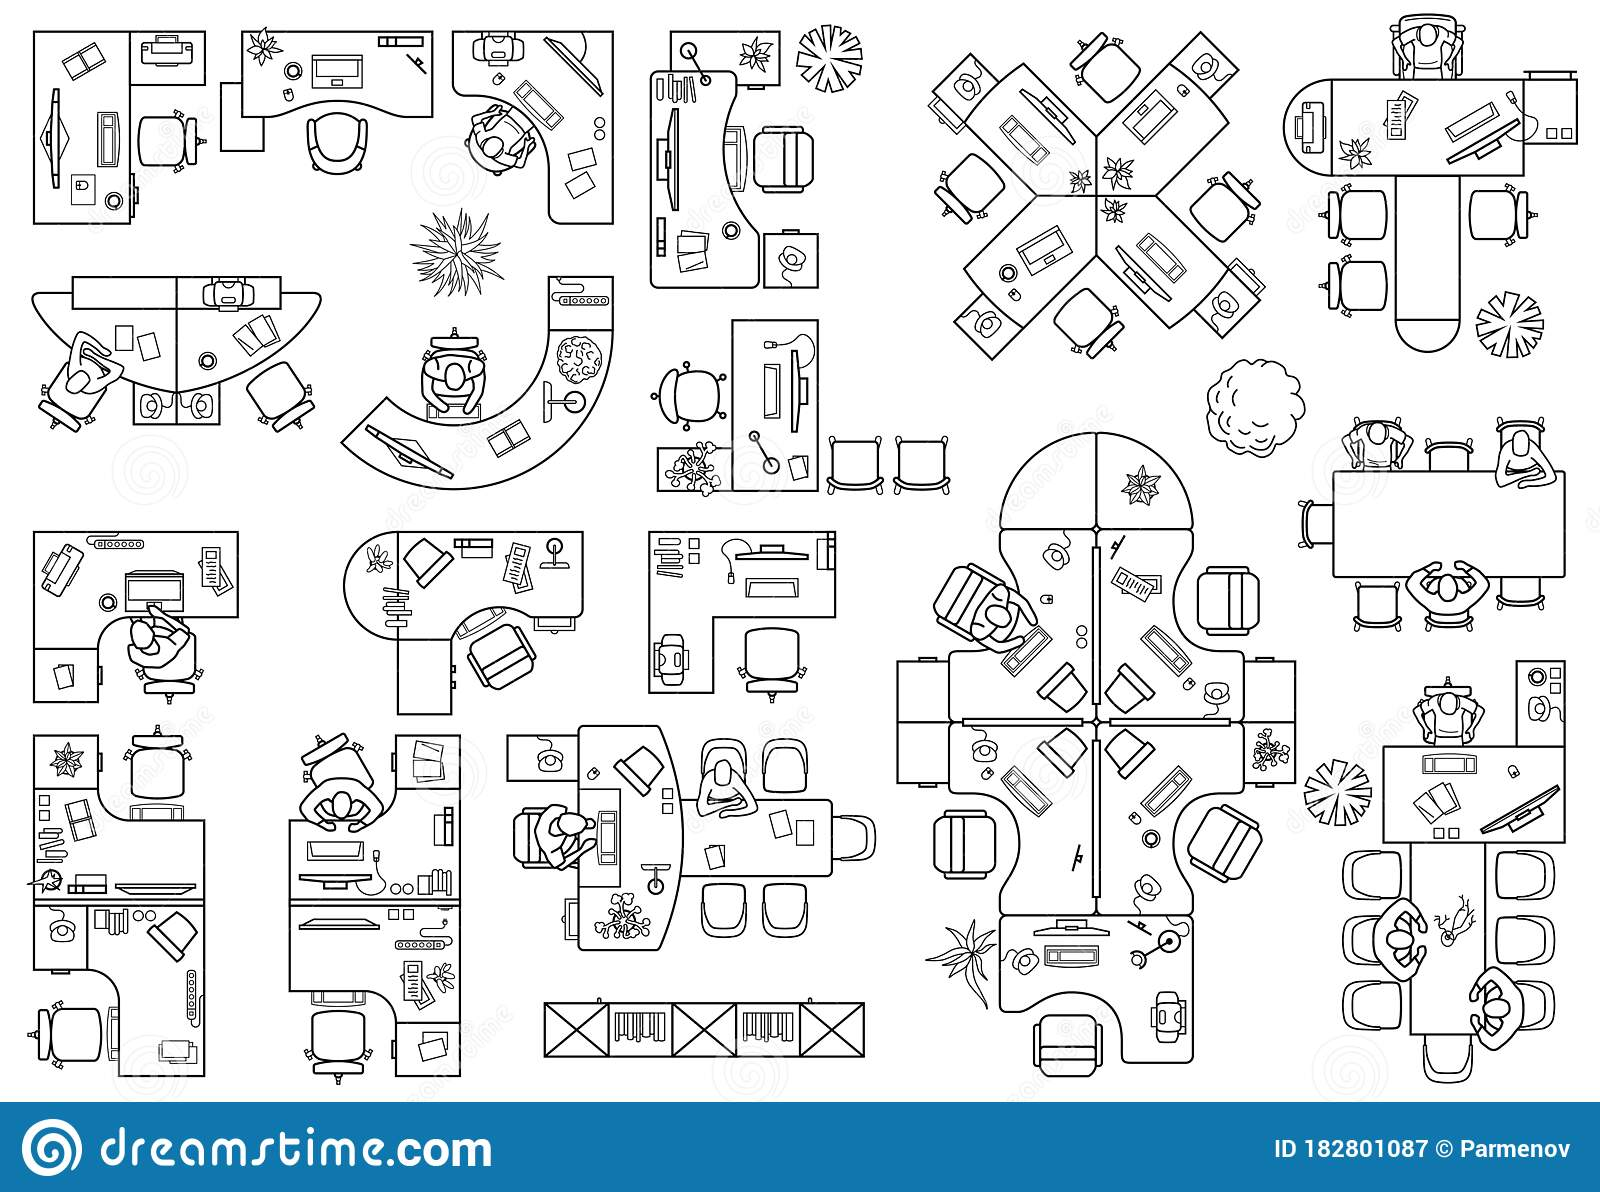 Desks Working Table System Of Office Equipment Floor Plan Of Office Or Cabinet In Top View Vector Stock Vector Illustration Of Icon Floor 182801087